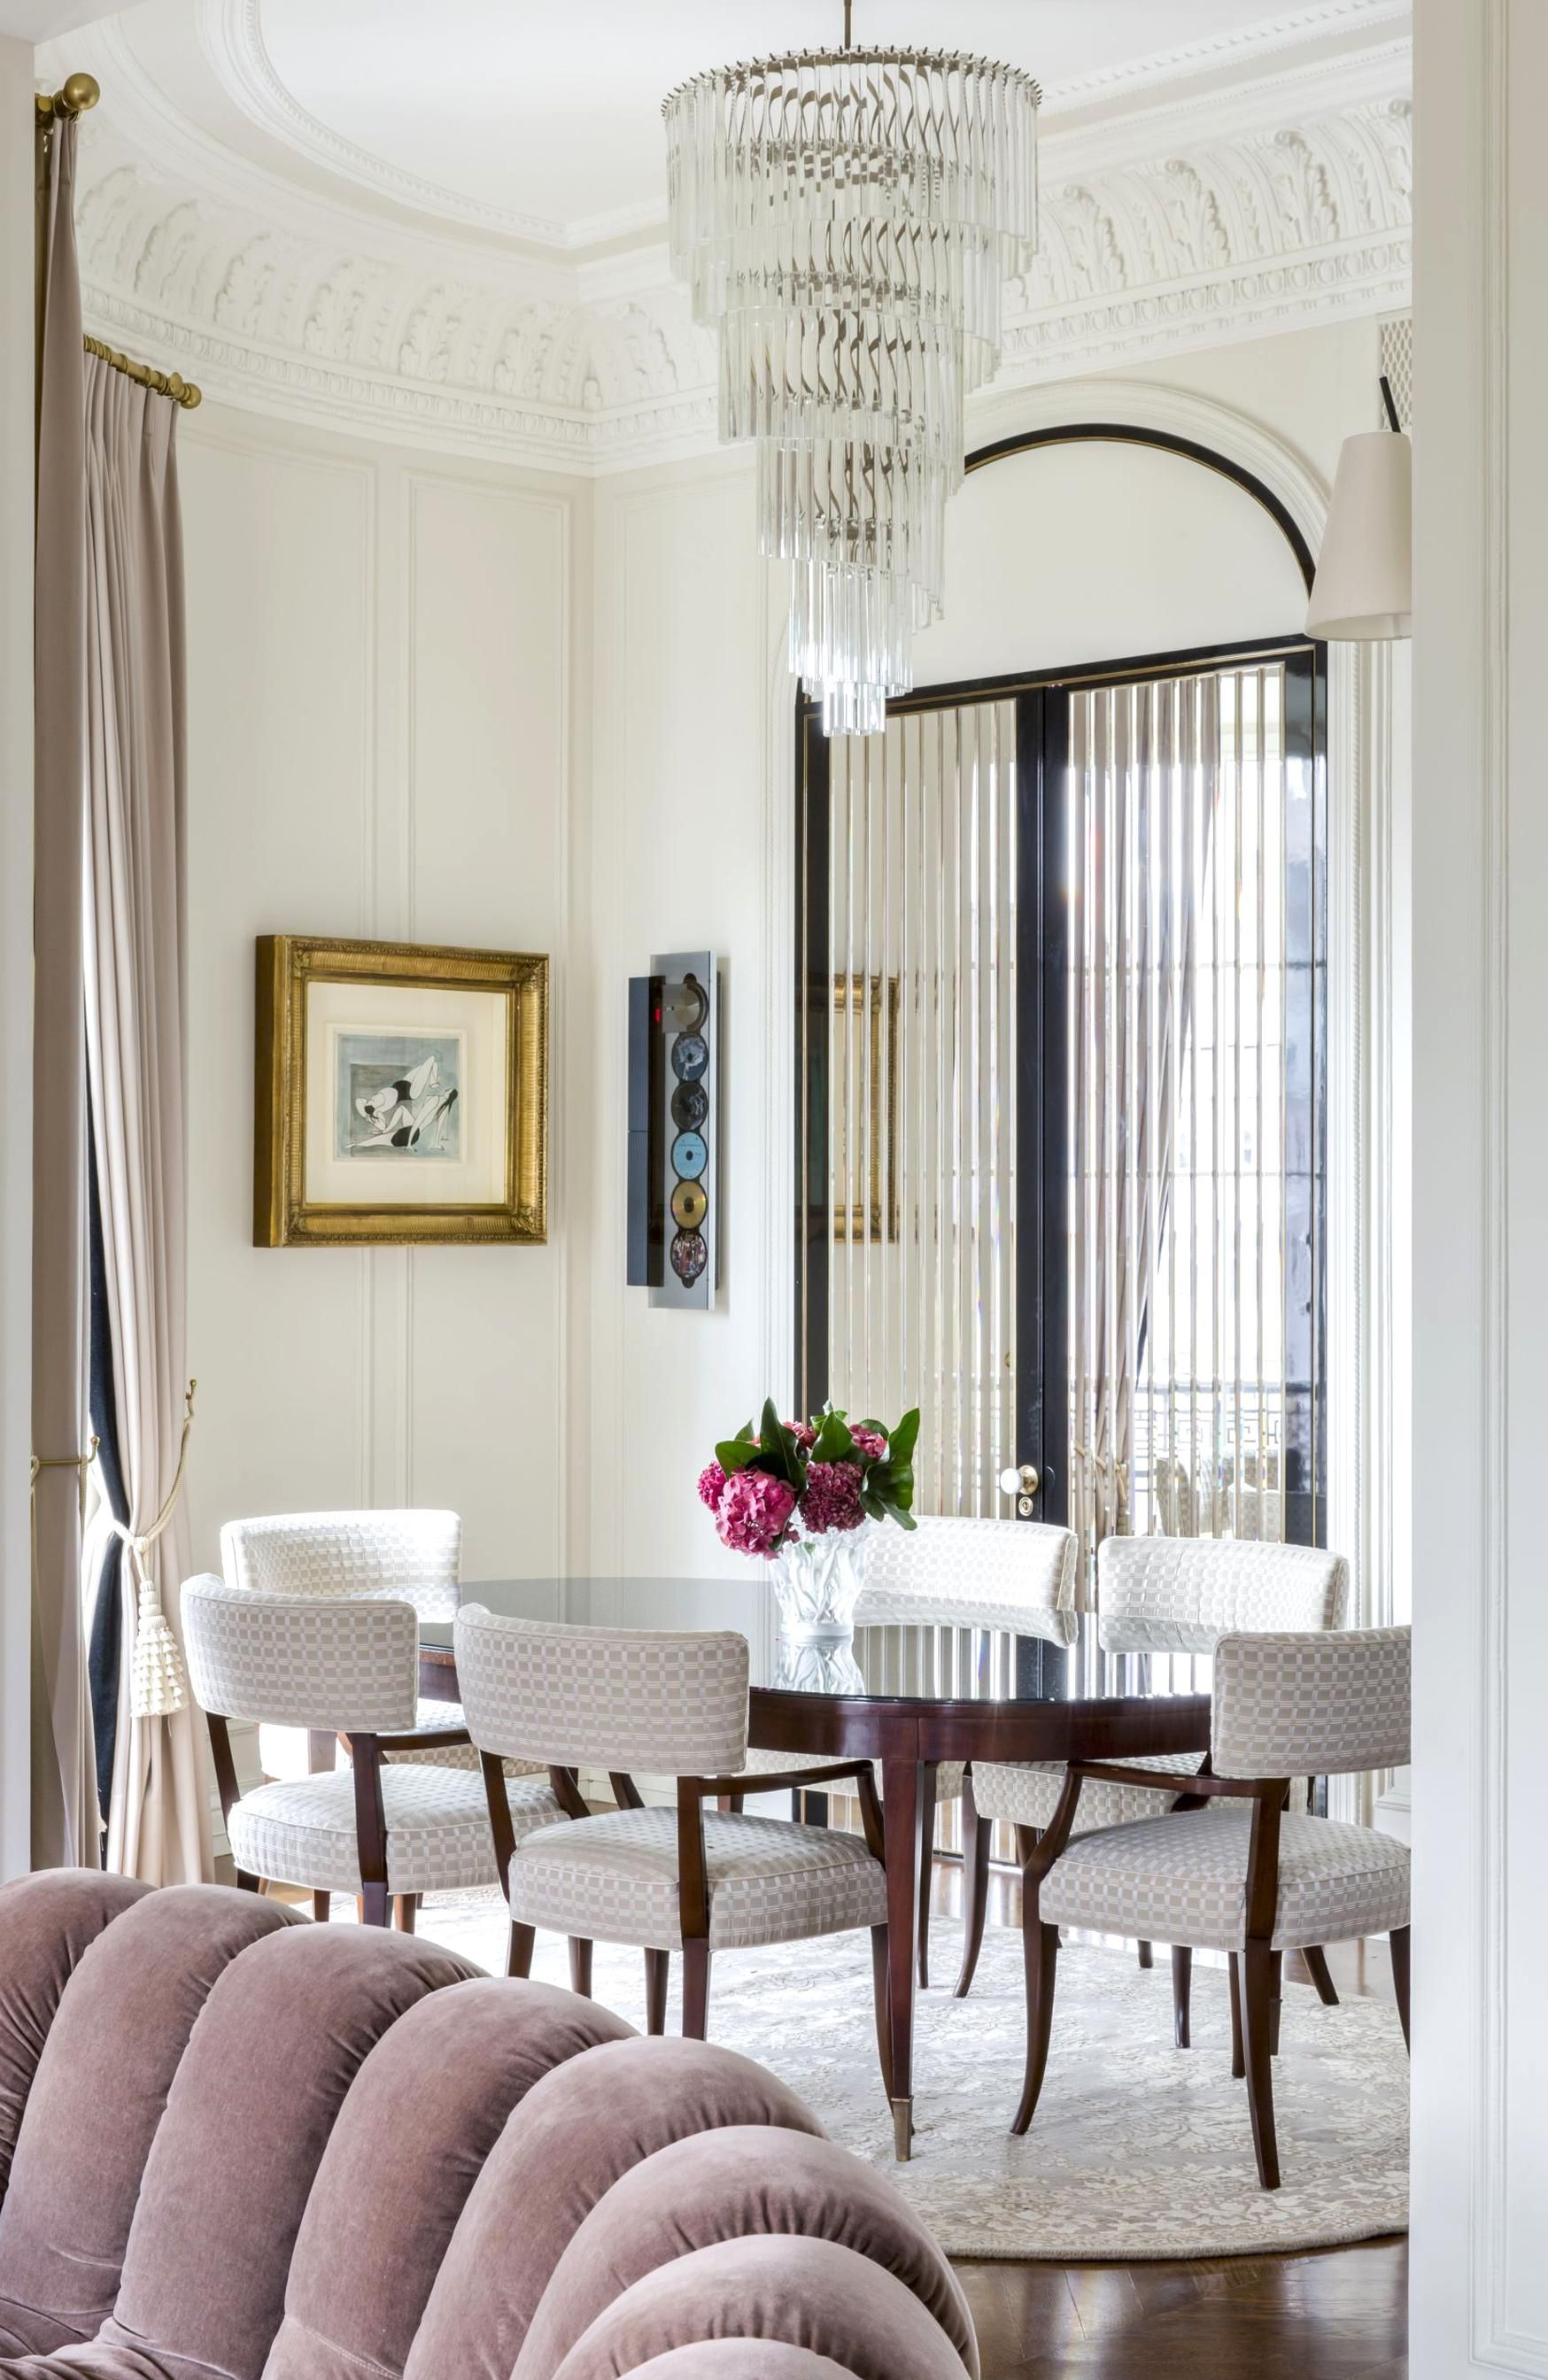 The Timeless Contemporary Art Deco Apartment In Moscow In 2020 Interior Deco Art Deco Living Room Deco Furniture